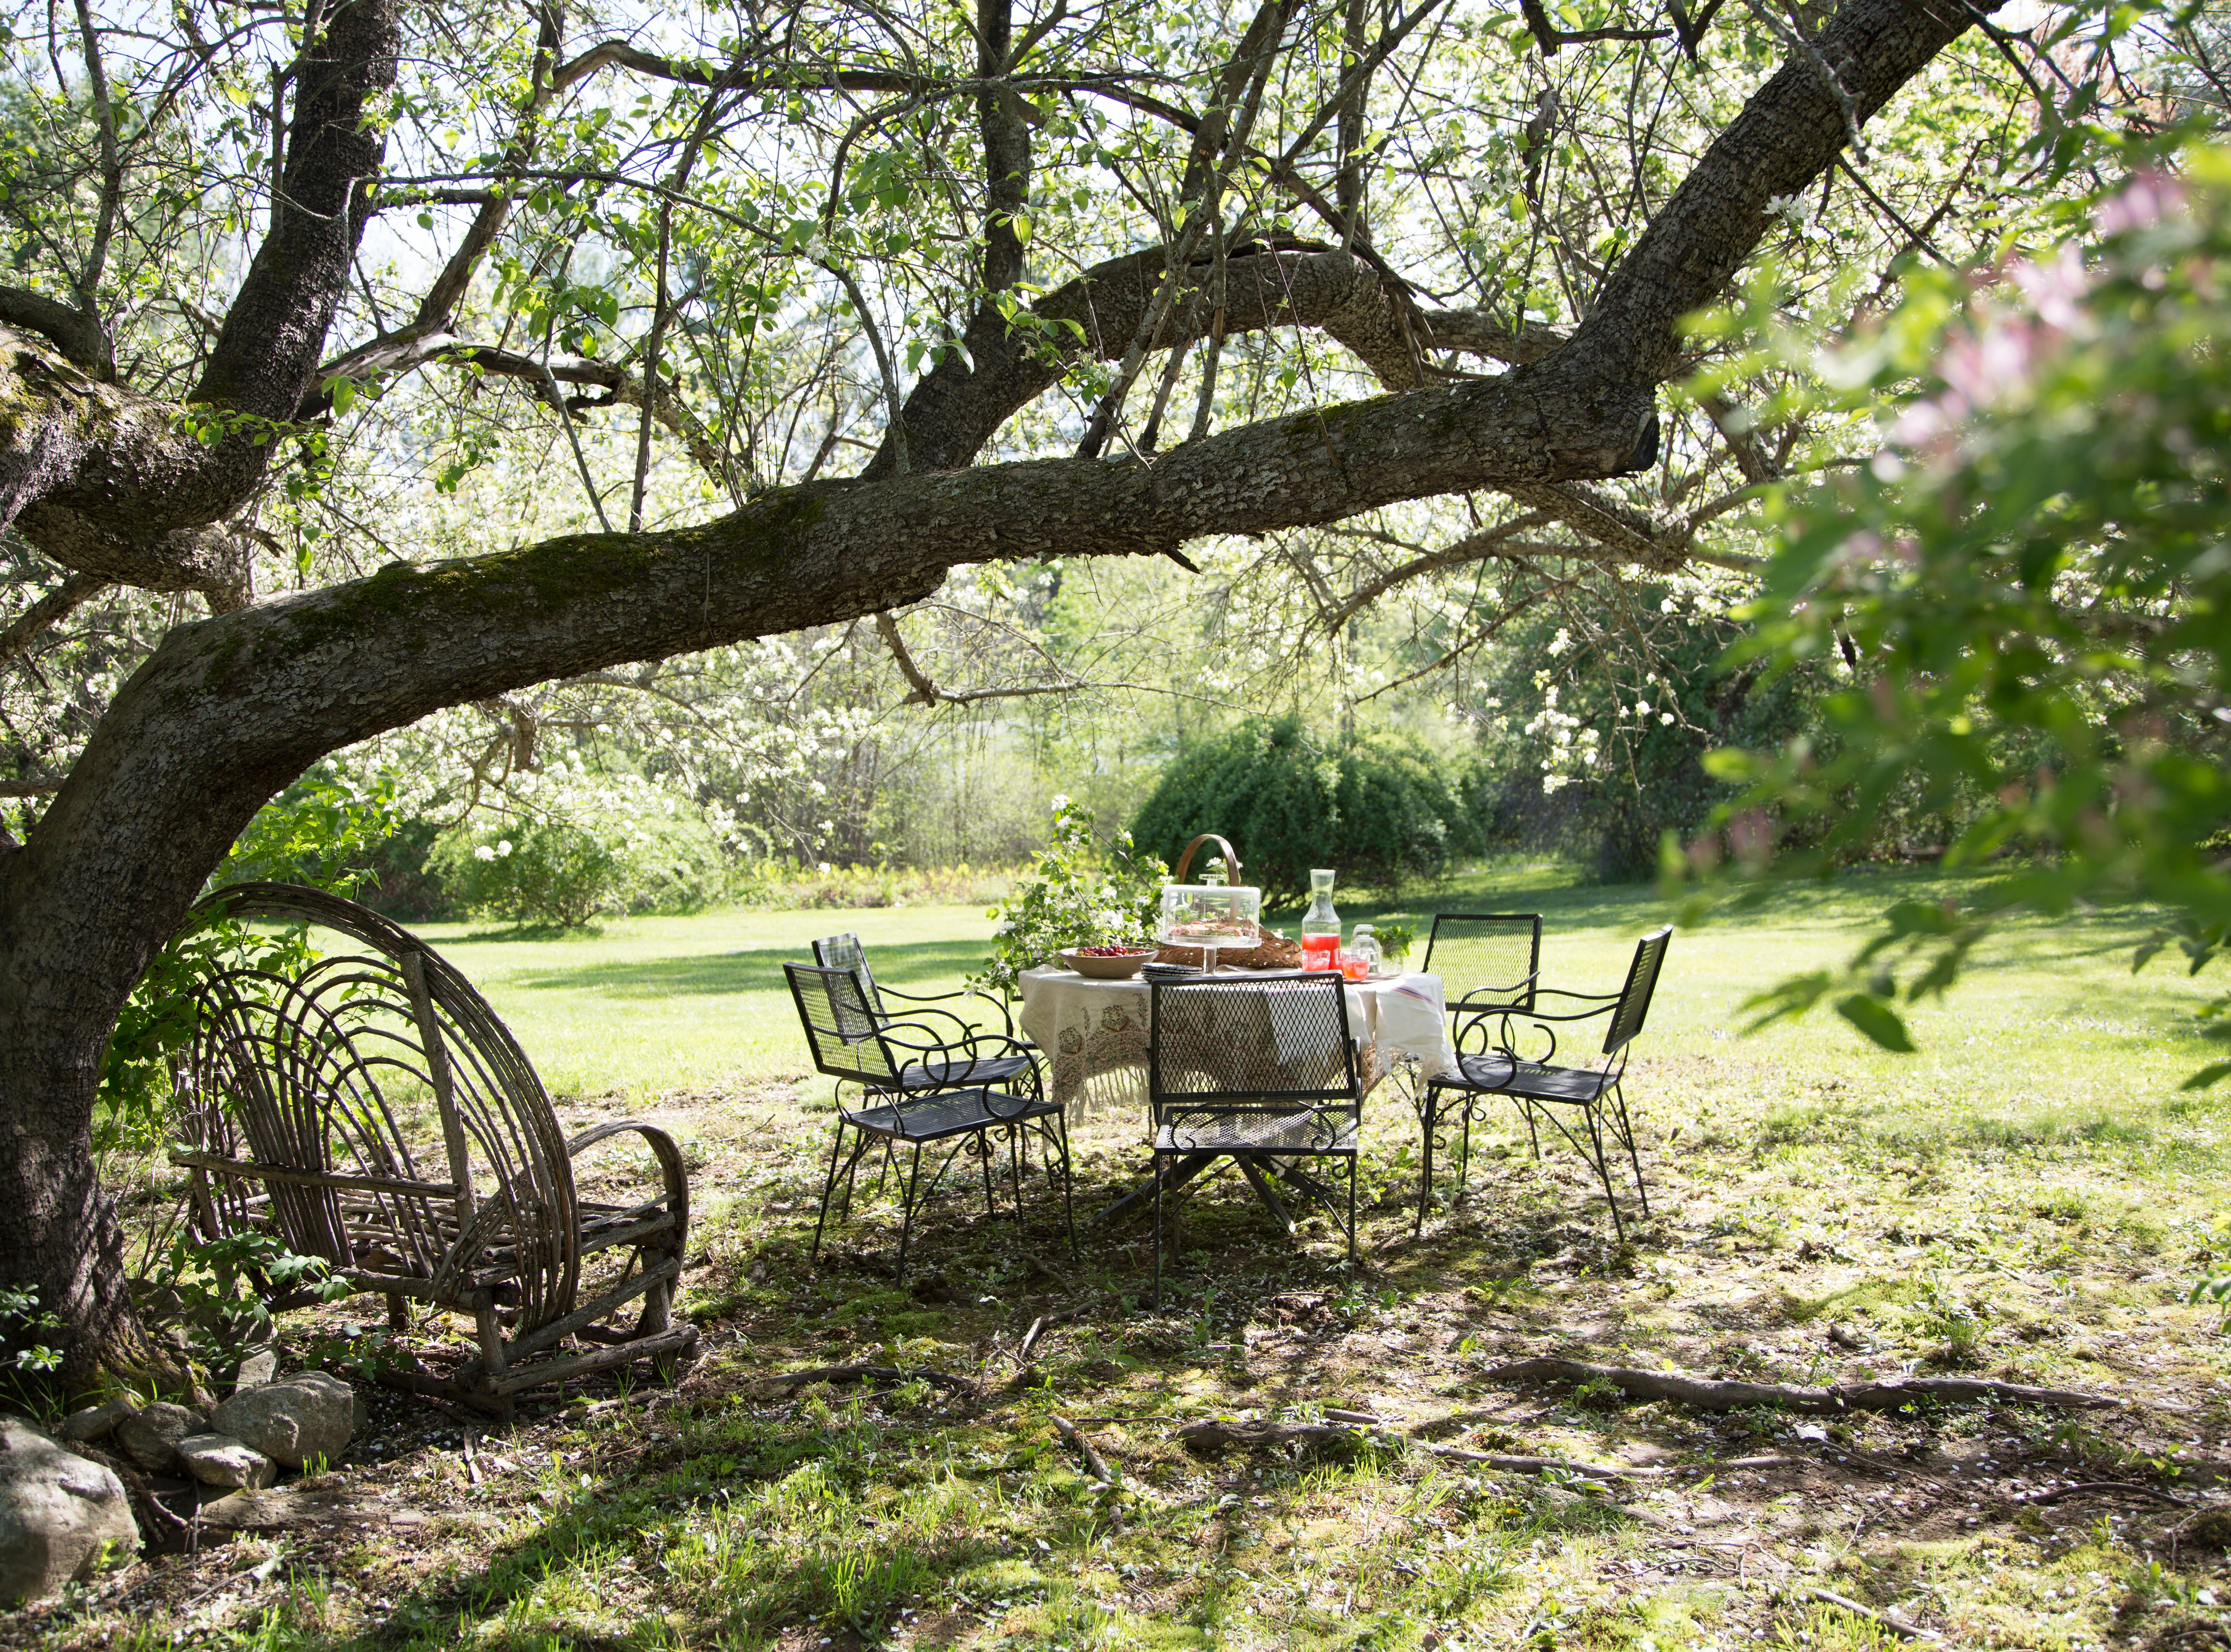 The thick branches of a 200-year-old apple tree reach wide to embrace and shelter a delightful spot for an intimate gathering.